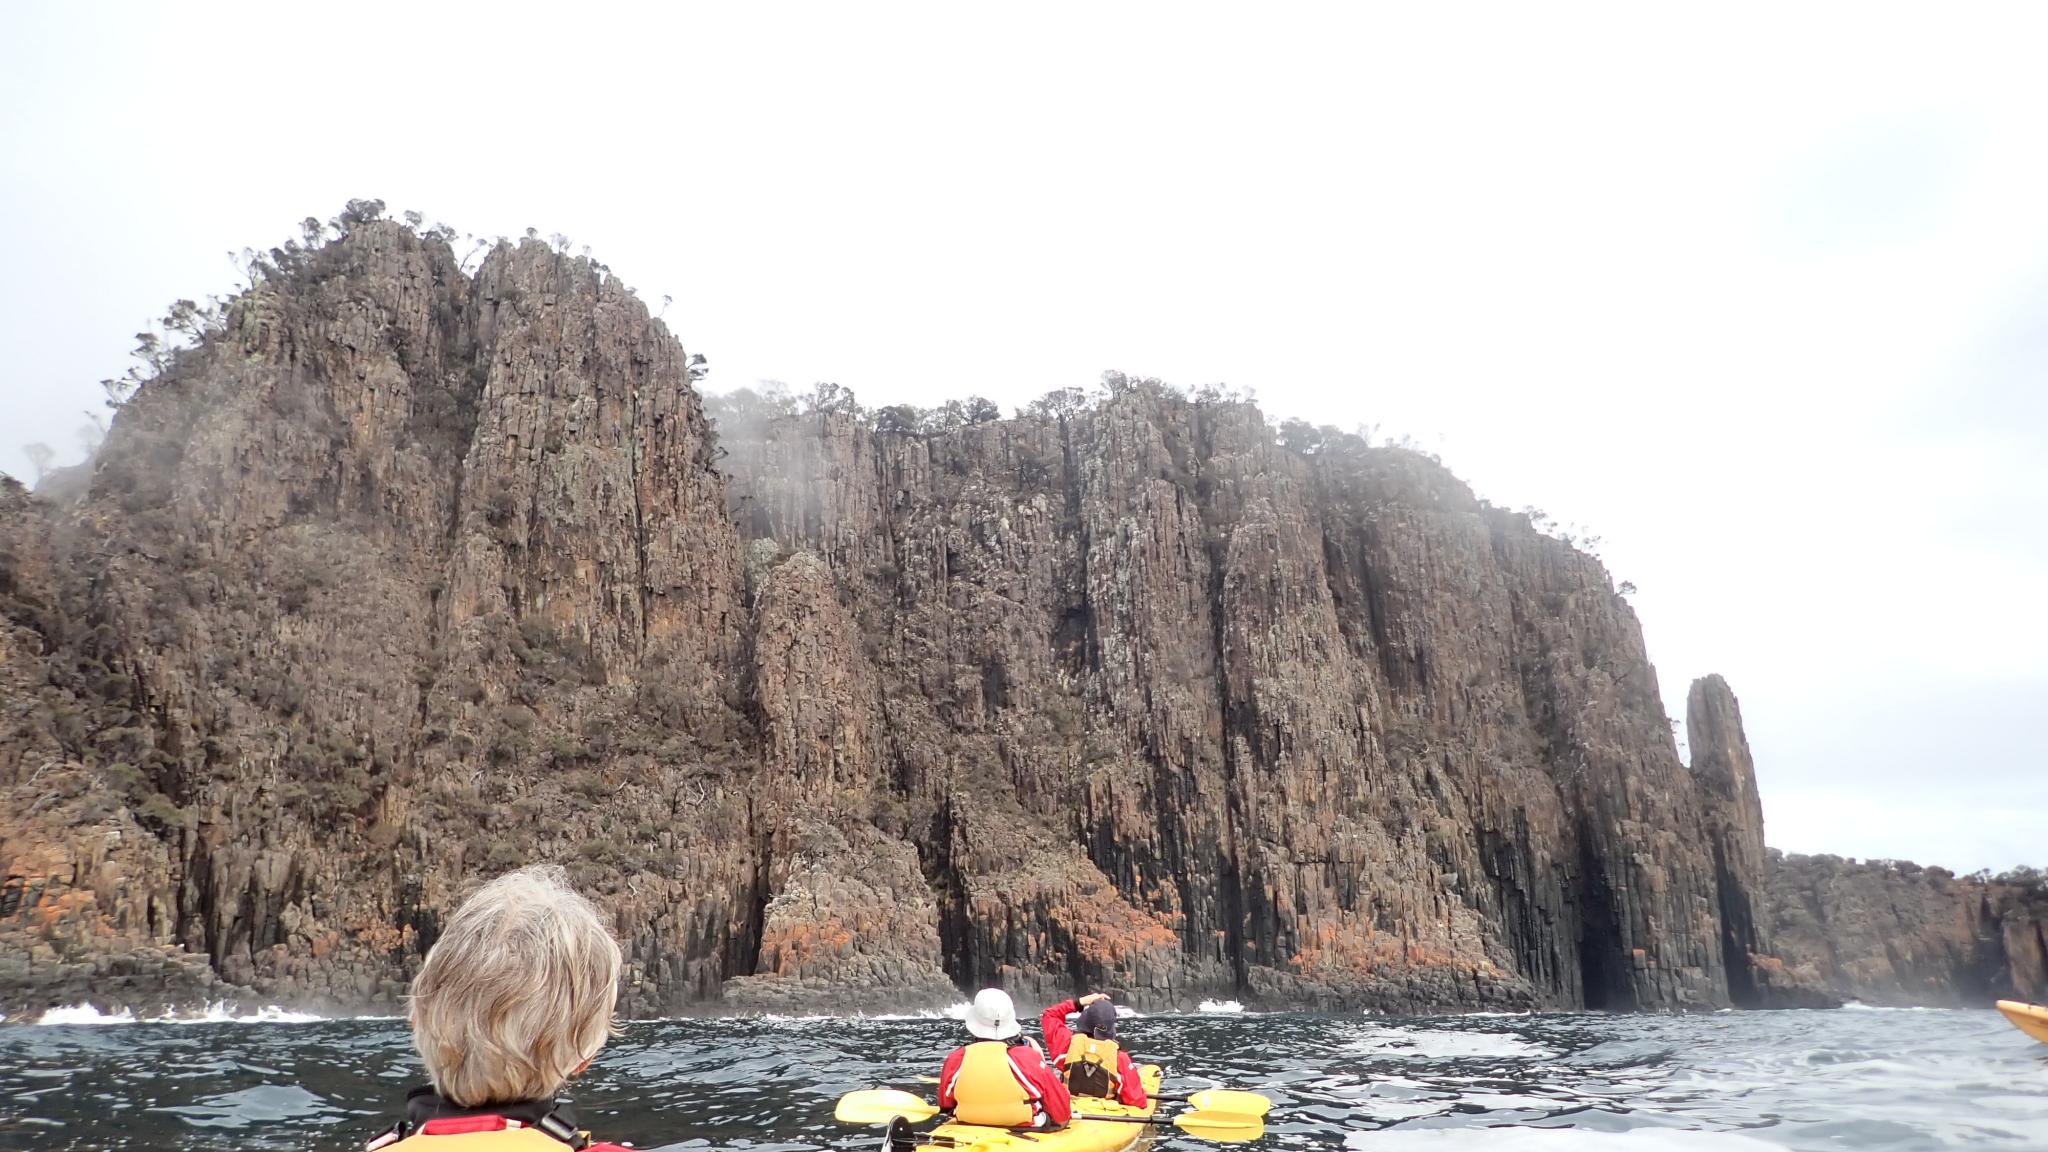 Sea kayaking adventure on the Tasman Peninsula, Kayaking Tasmania